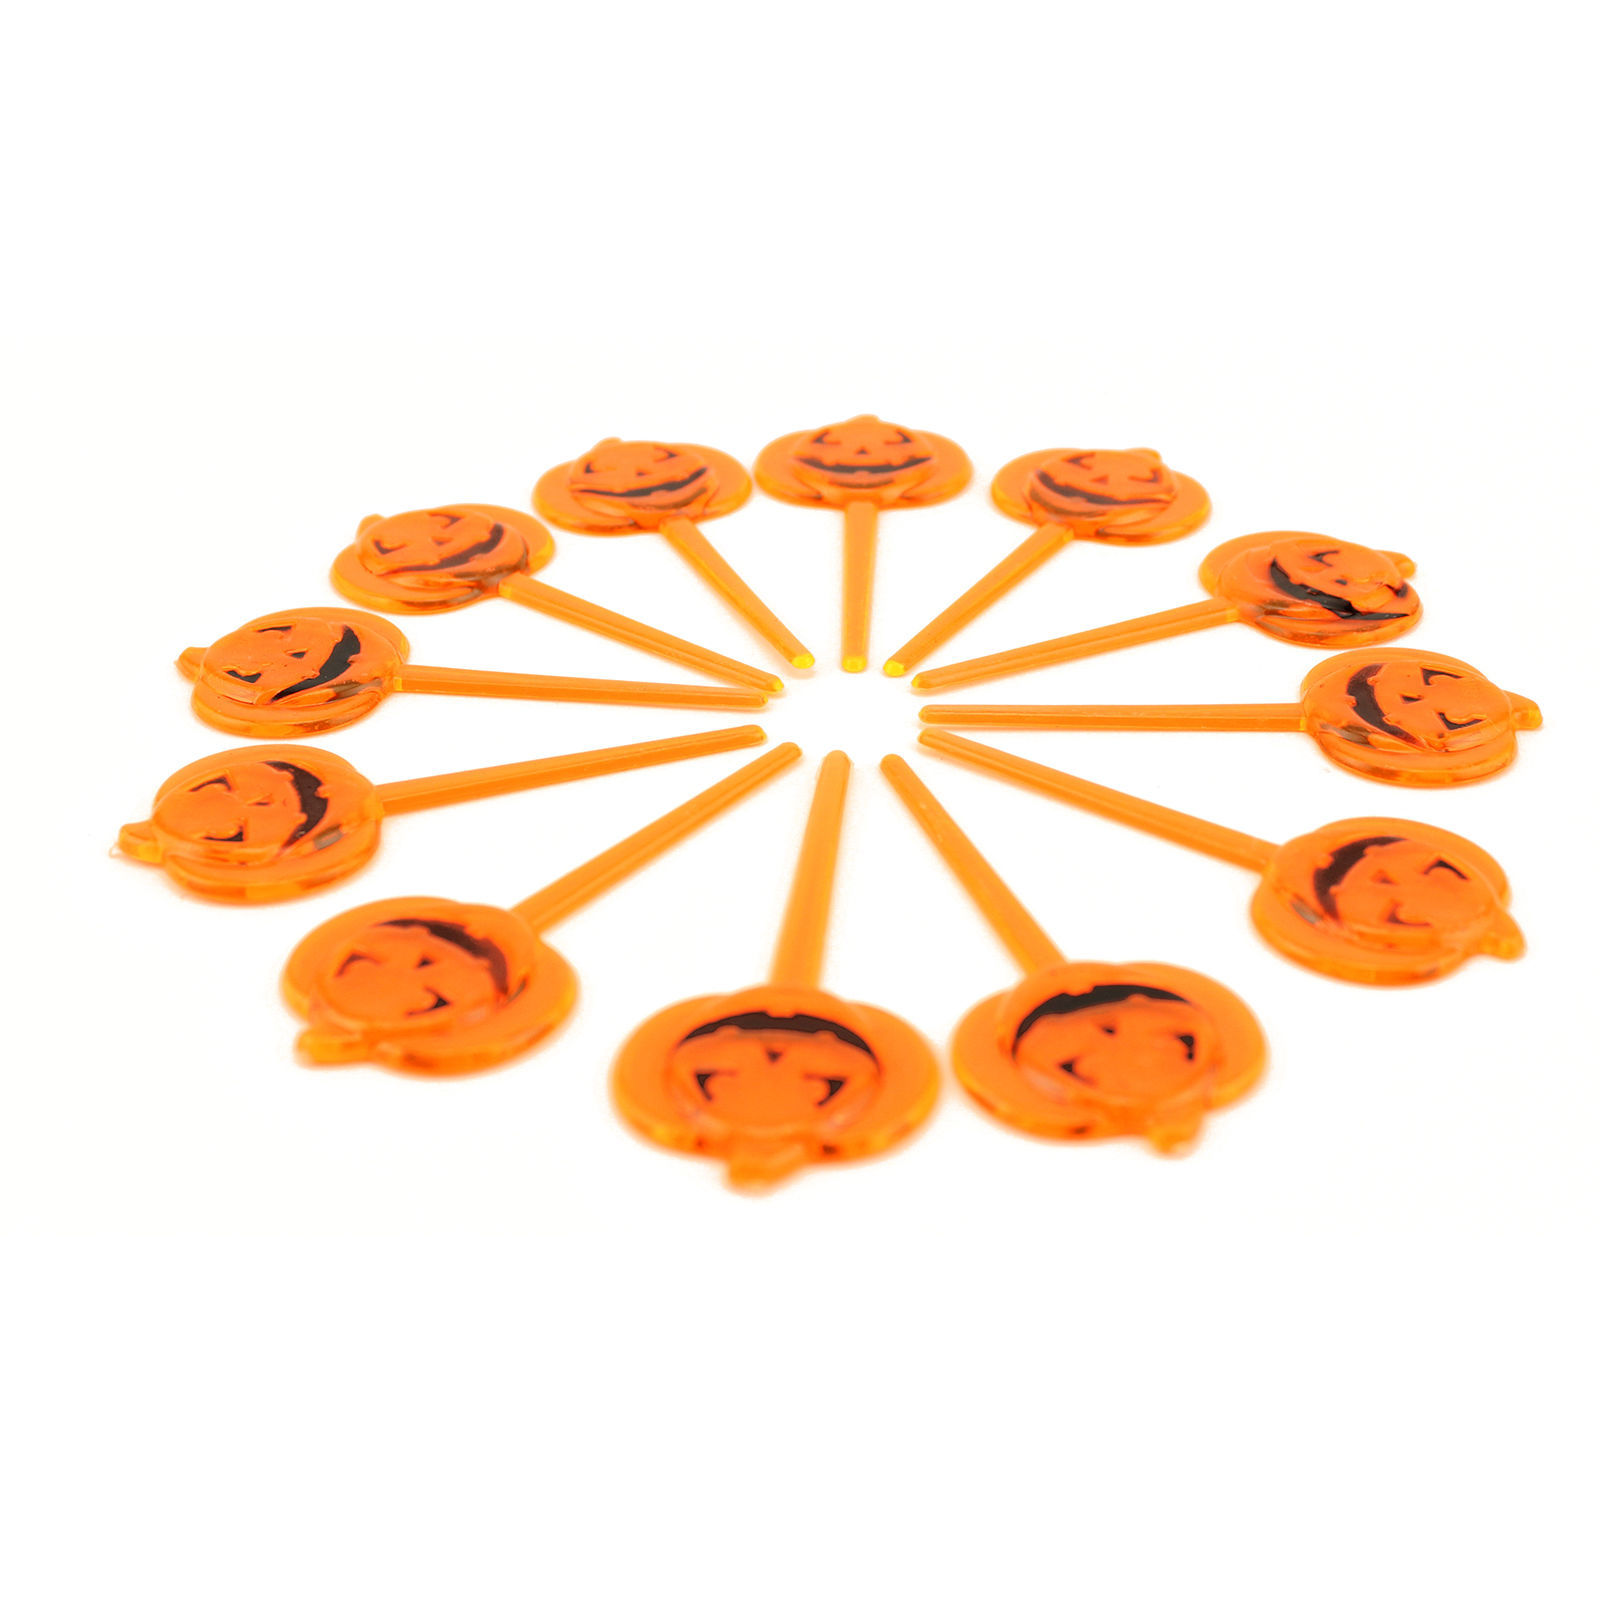 Halloween Orange Pumpkin Party Cupcake Appetizers Pick Toppers Decorations